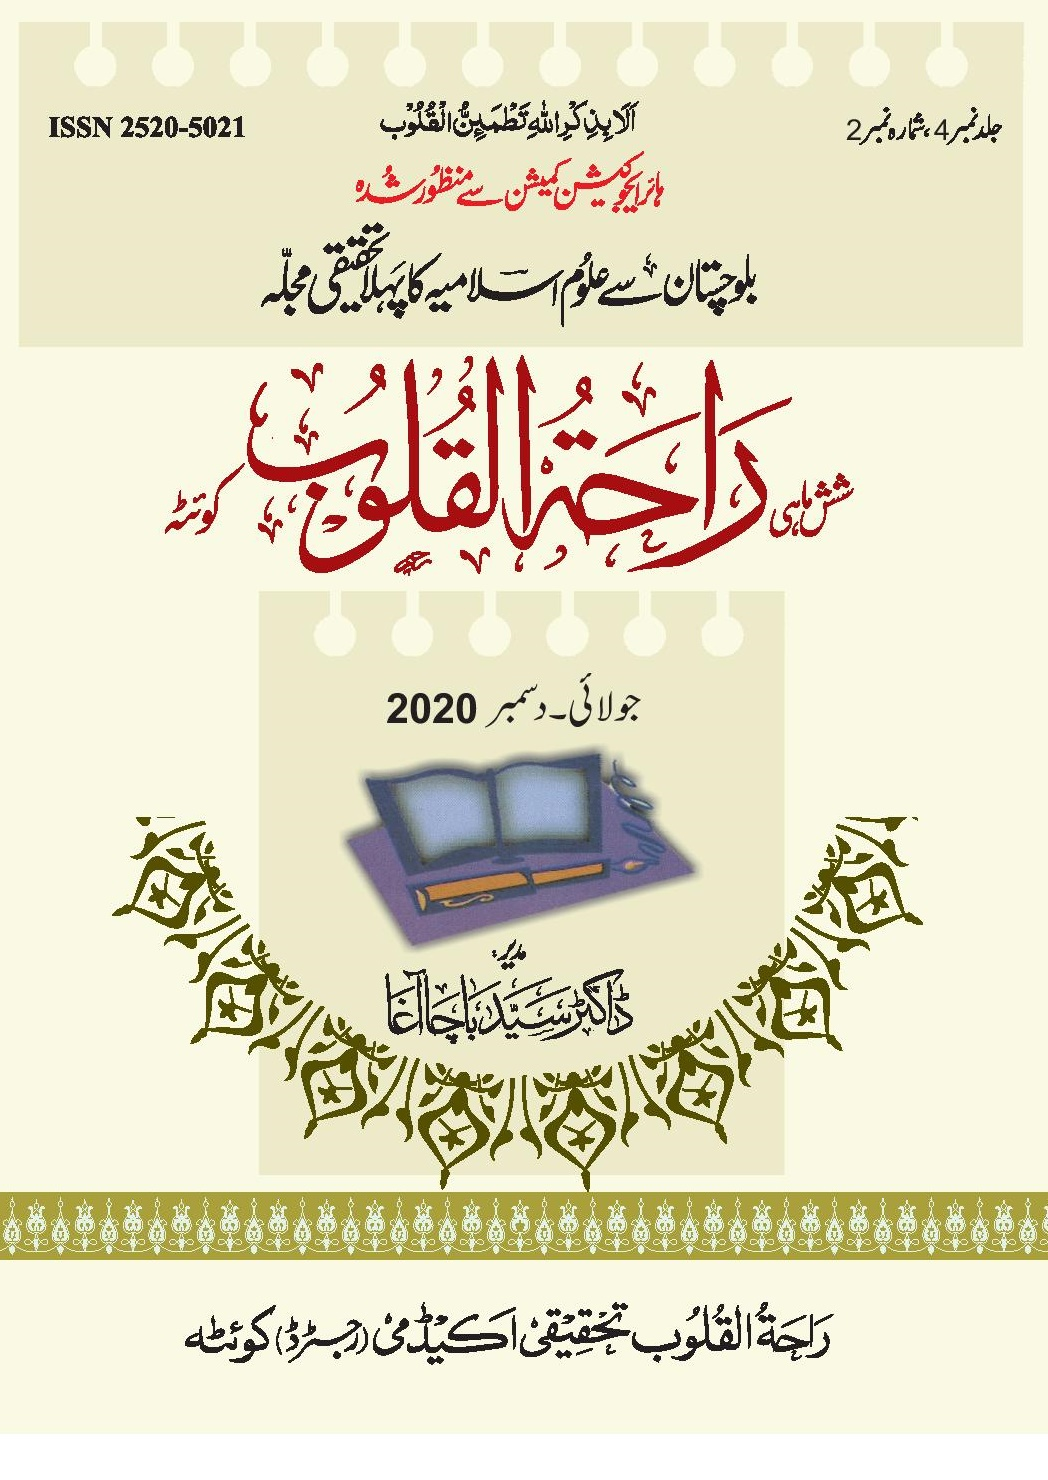 Rahat-ul-Quloob Research Journal